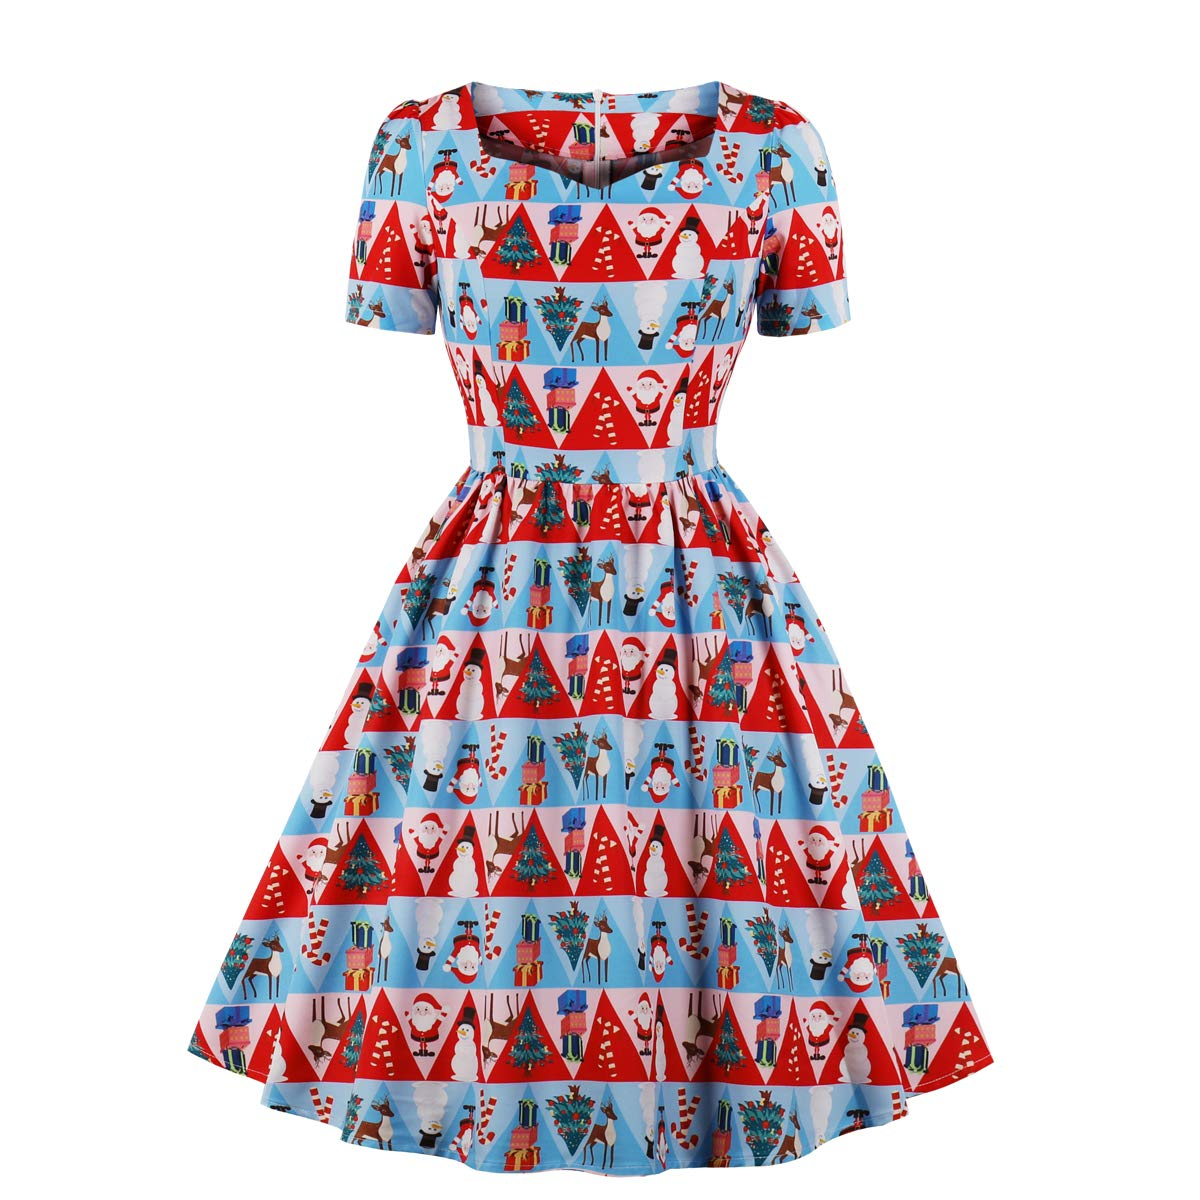 Swing Dance Clothing You Can Dance In Wellwits Womens Triangle Fancy Pattern Print Tea Length 1950s Vintage Dress $22.98 AT vintagedancer.com